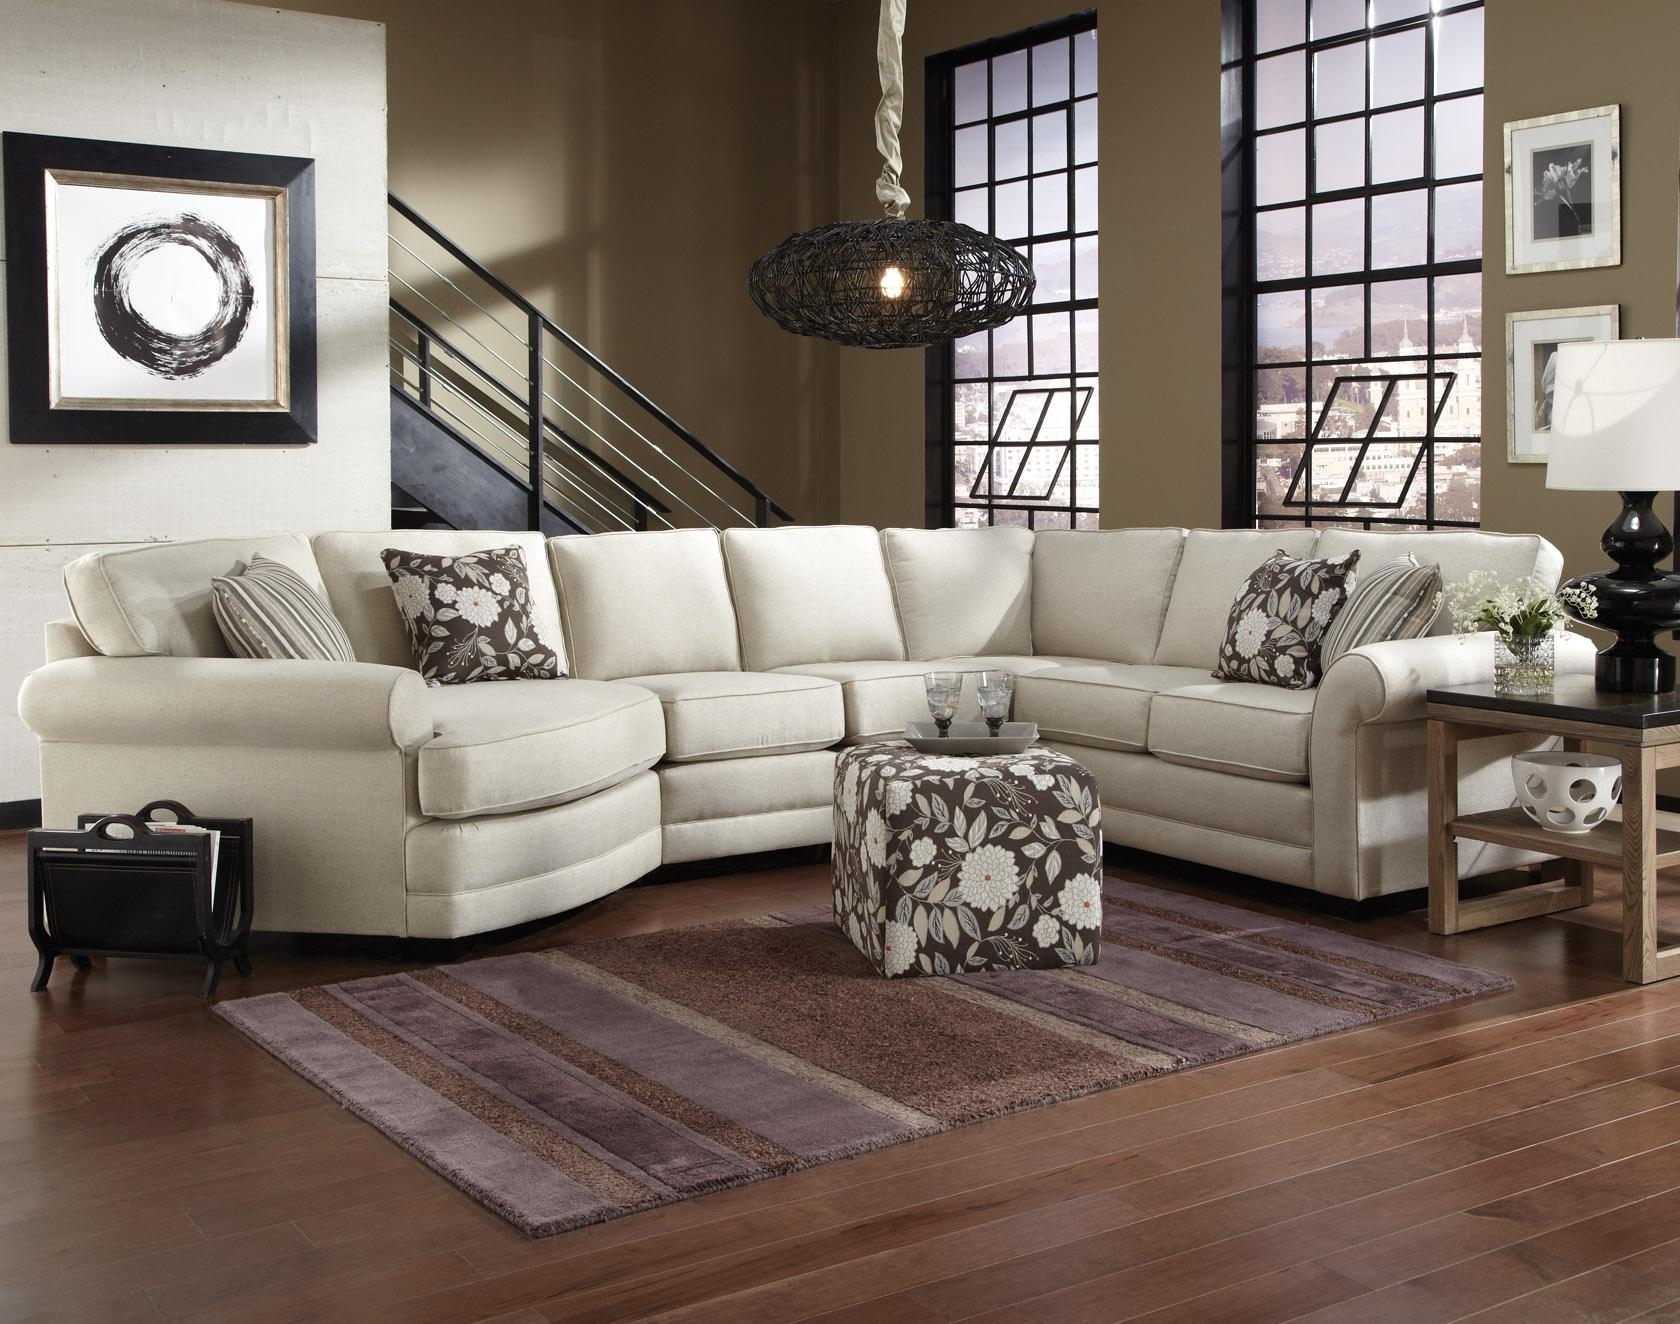 England Brantley 5 Seat Sectional Sofa With Cuddler – Ahfa – Sofa Inside Most Up To Date Kansas City Mo Sectional Sofas (View 3 of 15)